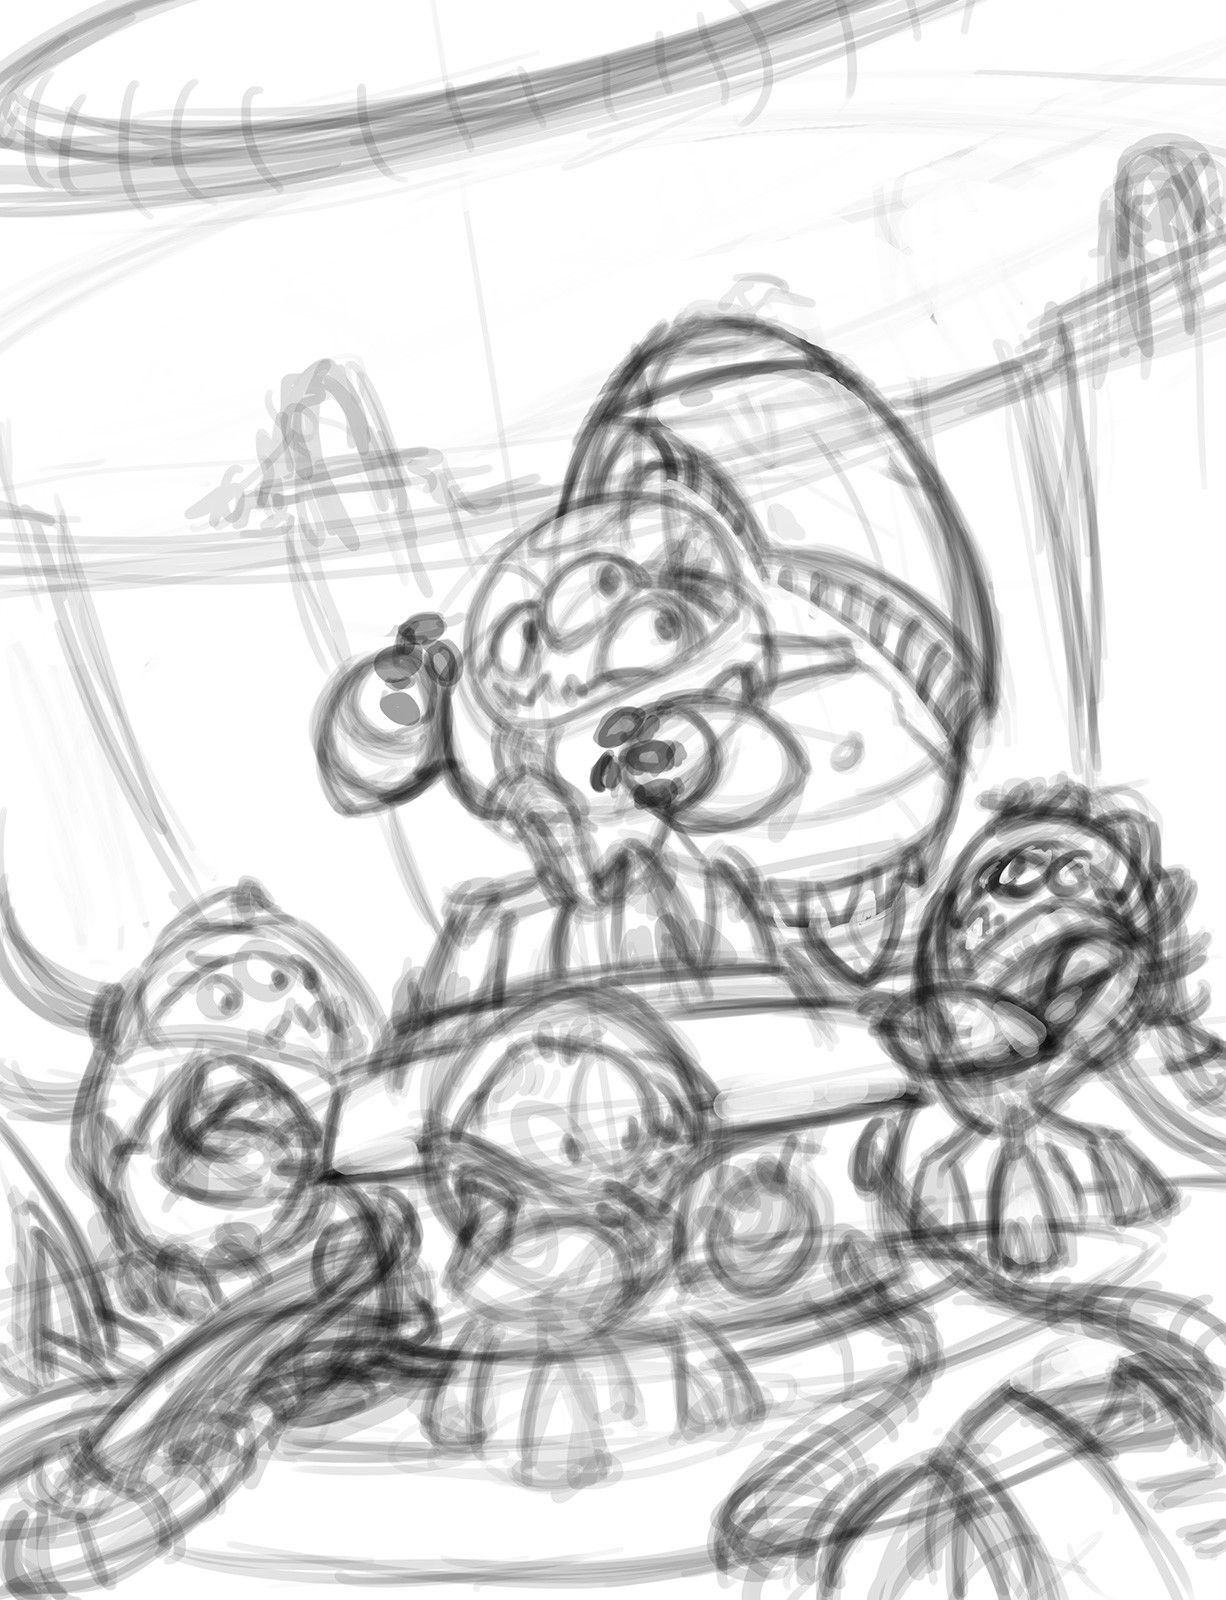 Cleaned up the scribbles with better composition and perspective that somewhat makes sense...